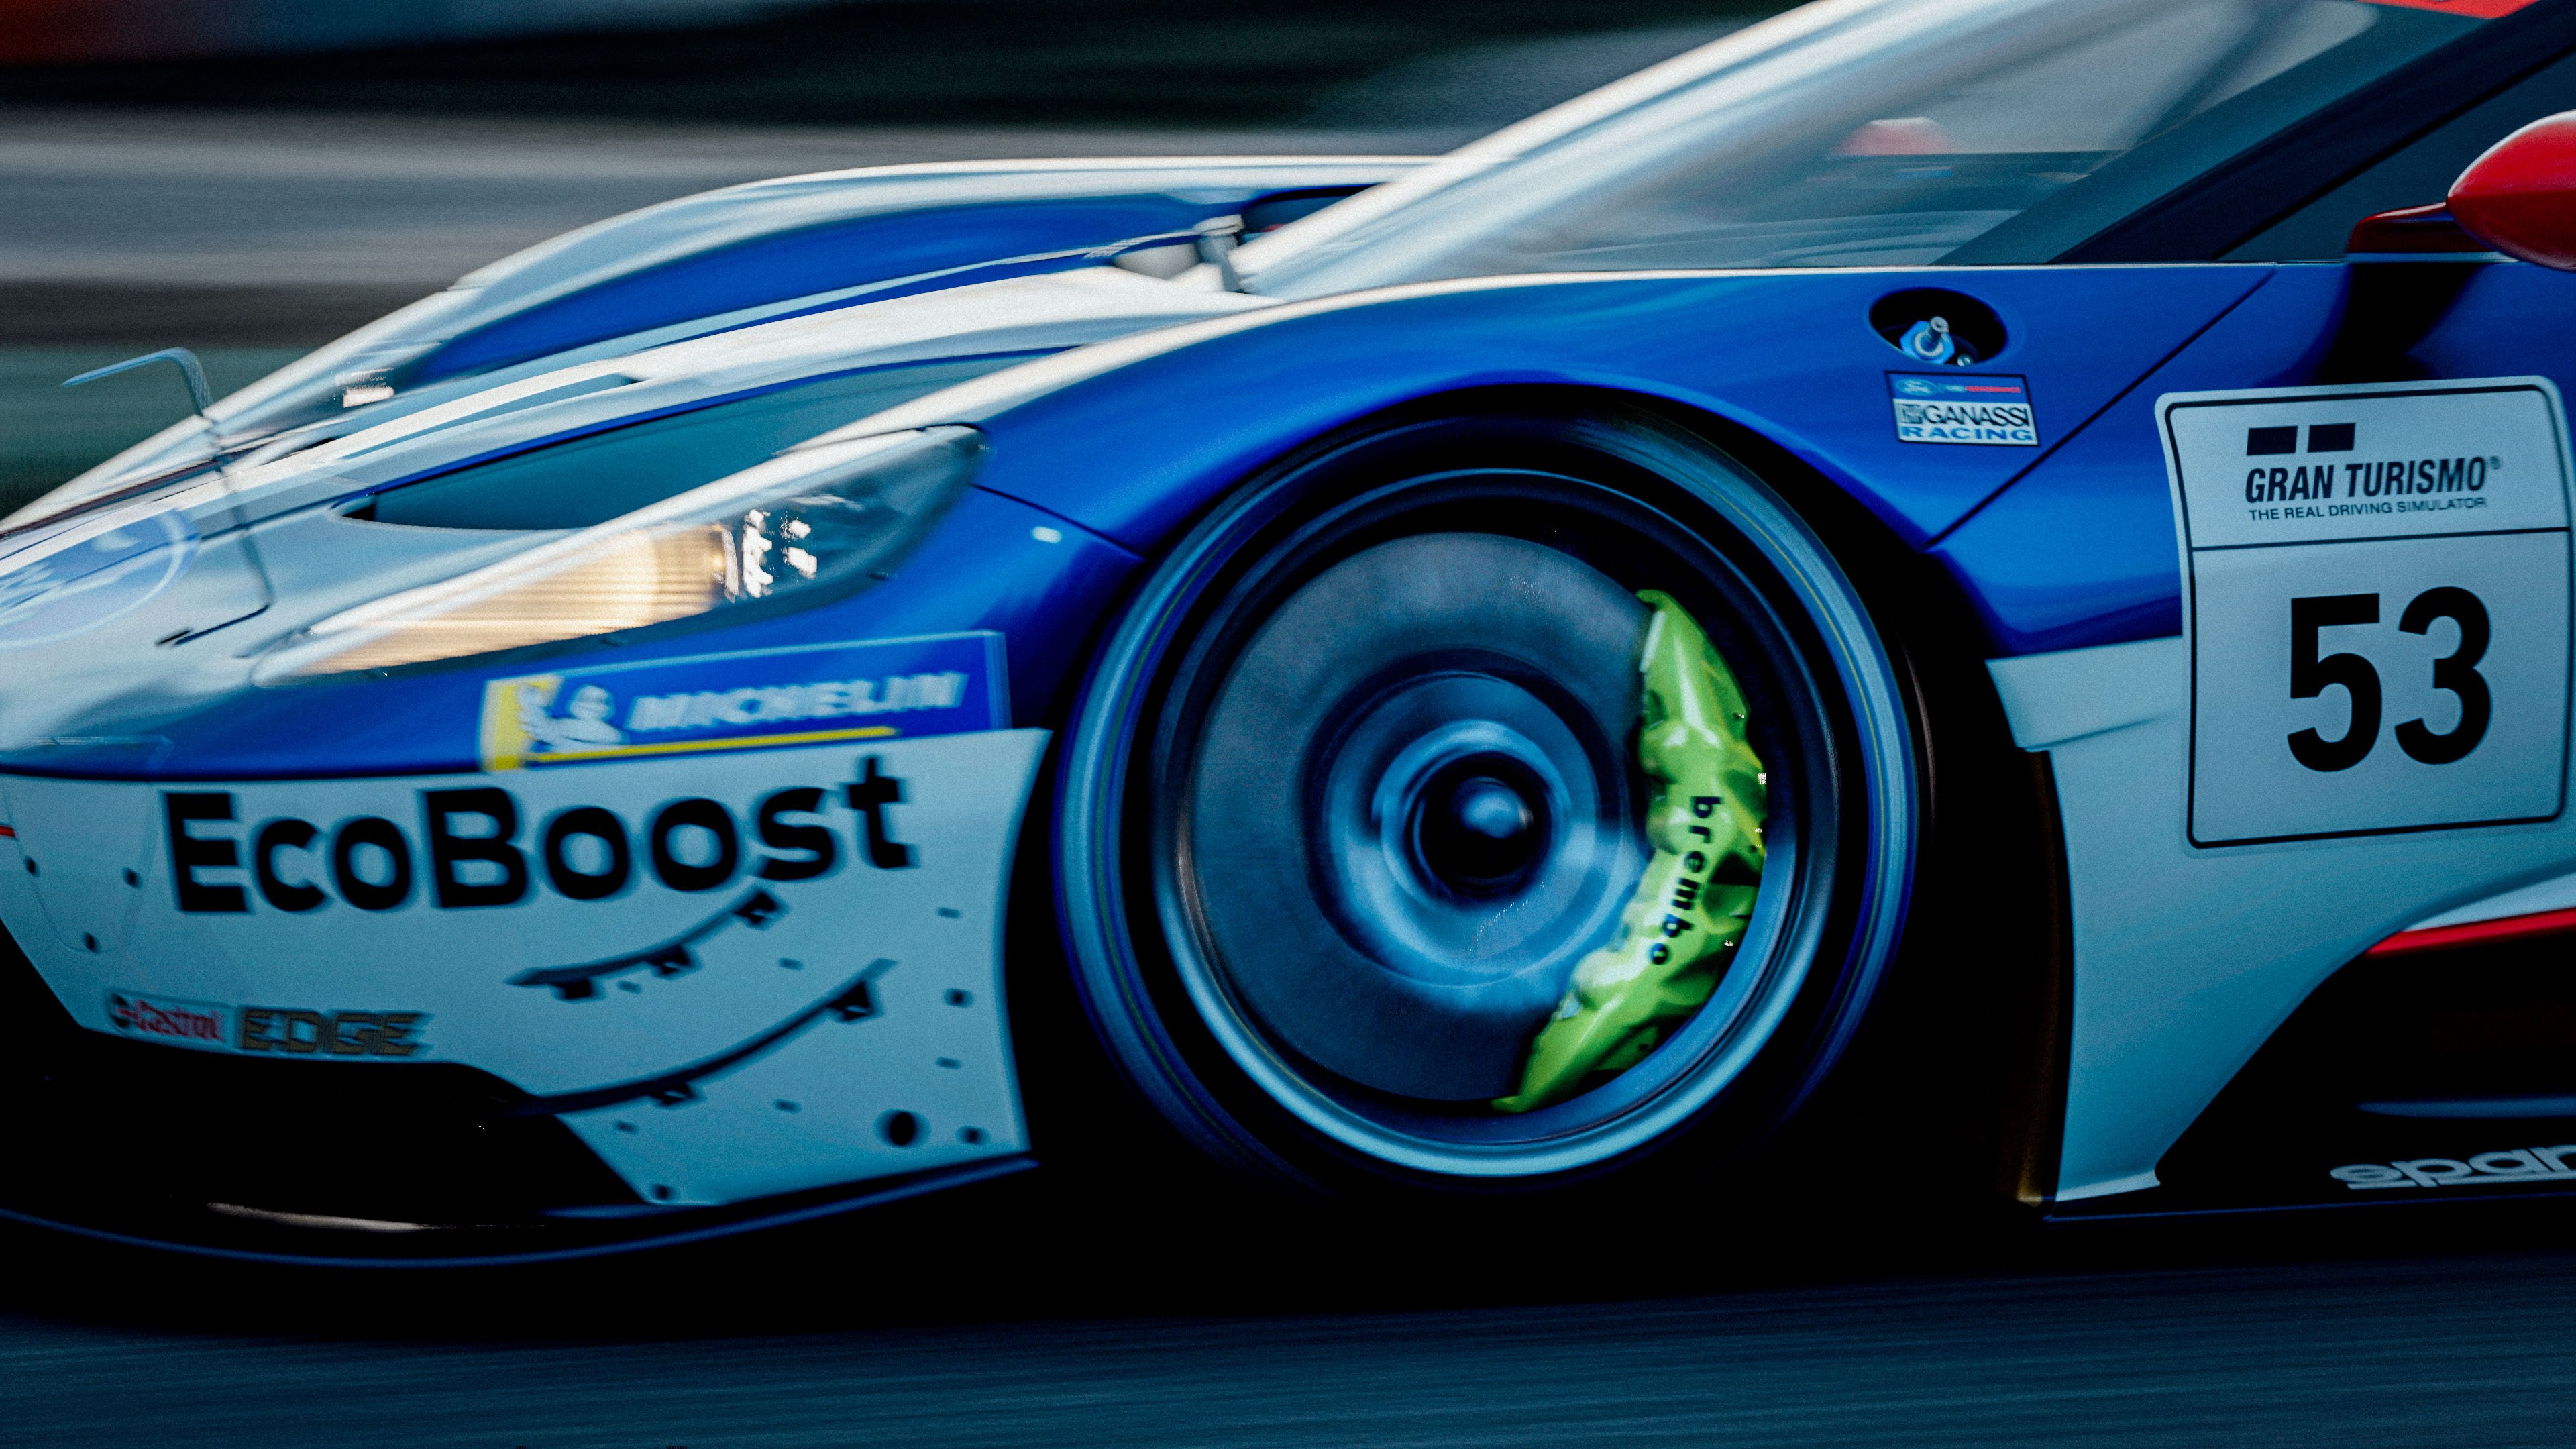 Brembo Becomes Official Technical Partner in Braking Systems for Gran Turismo 7